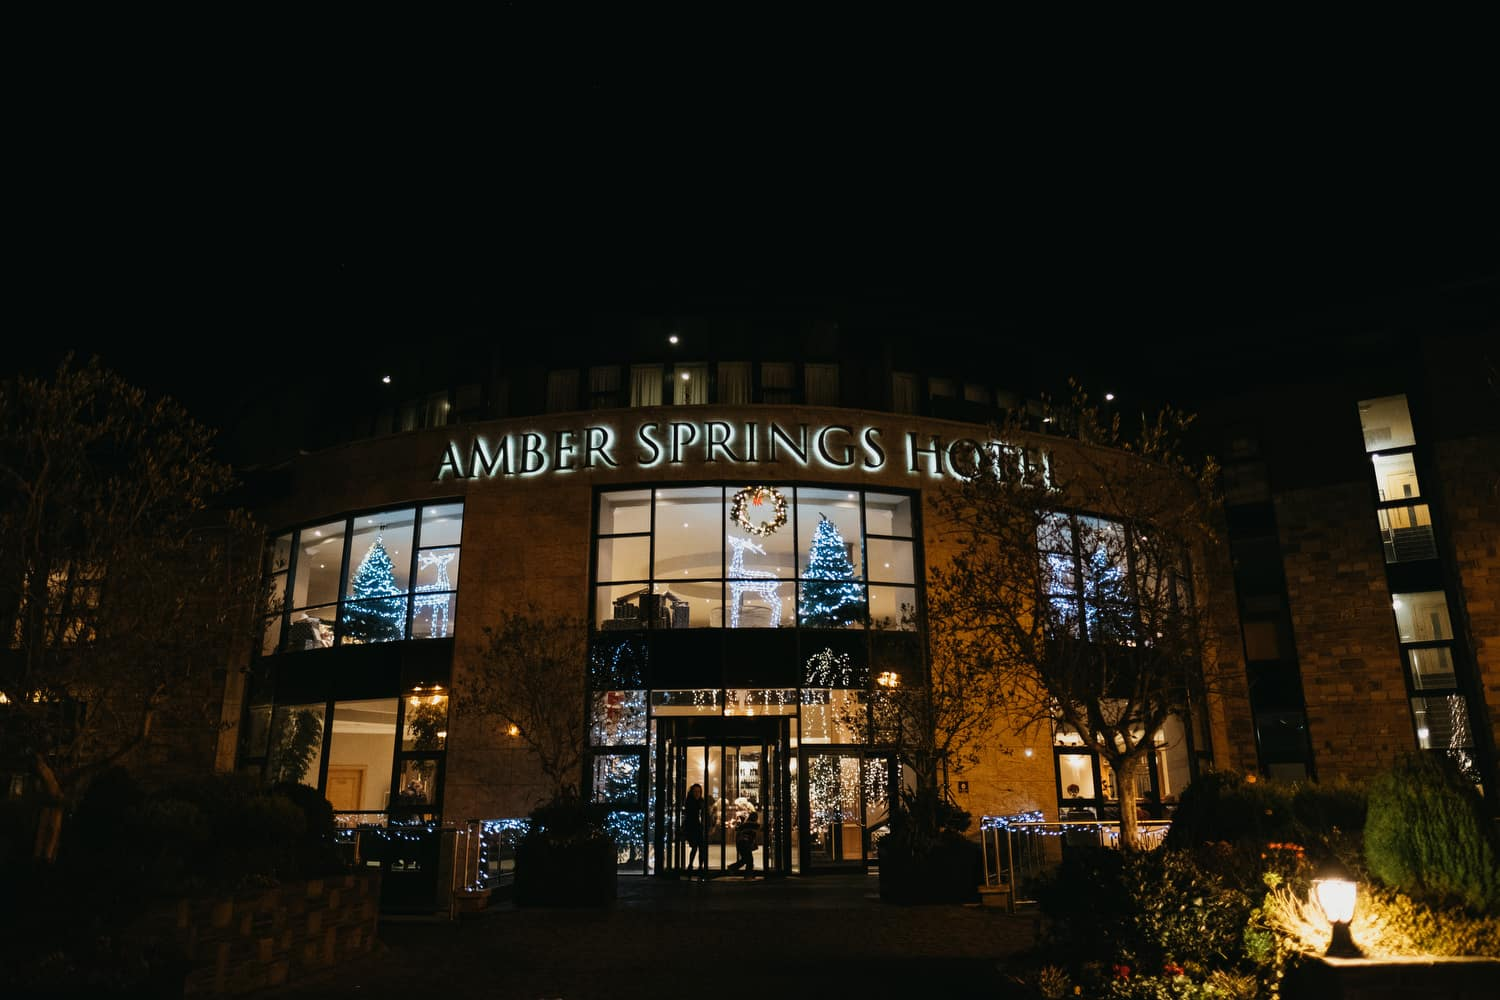 The Amber Springs Hotel in Gorey Wexford